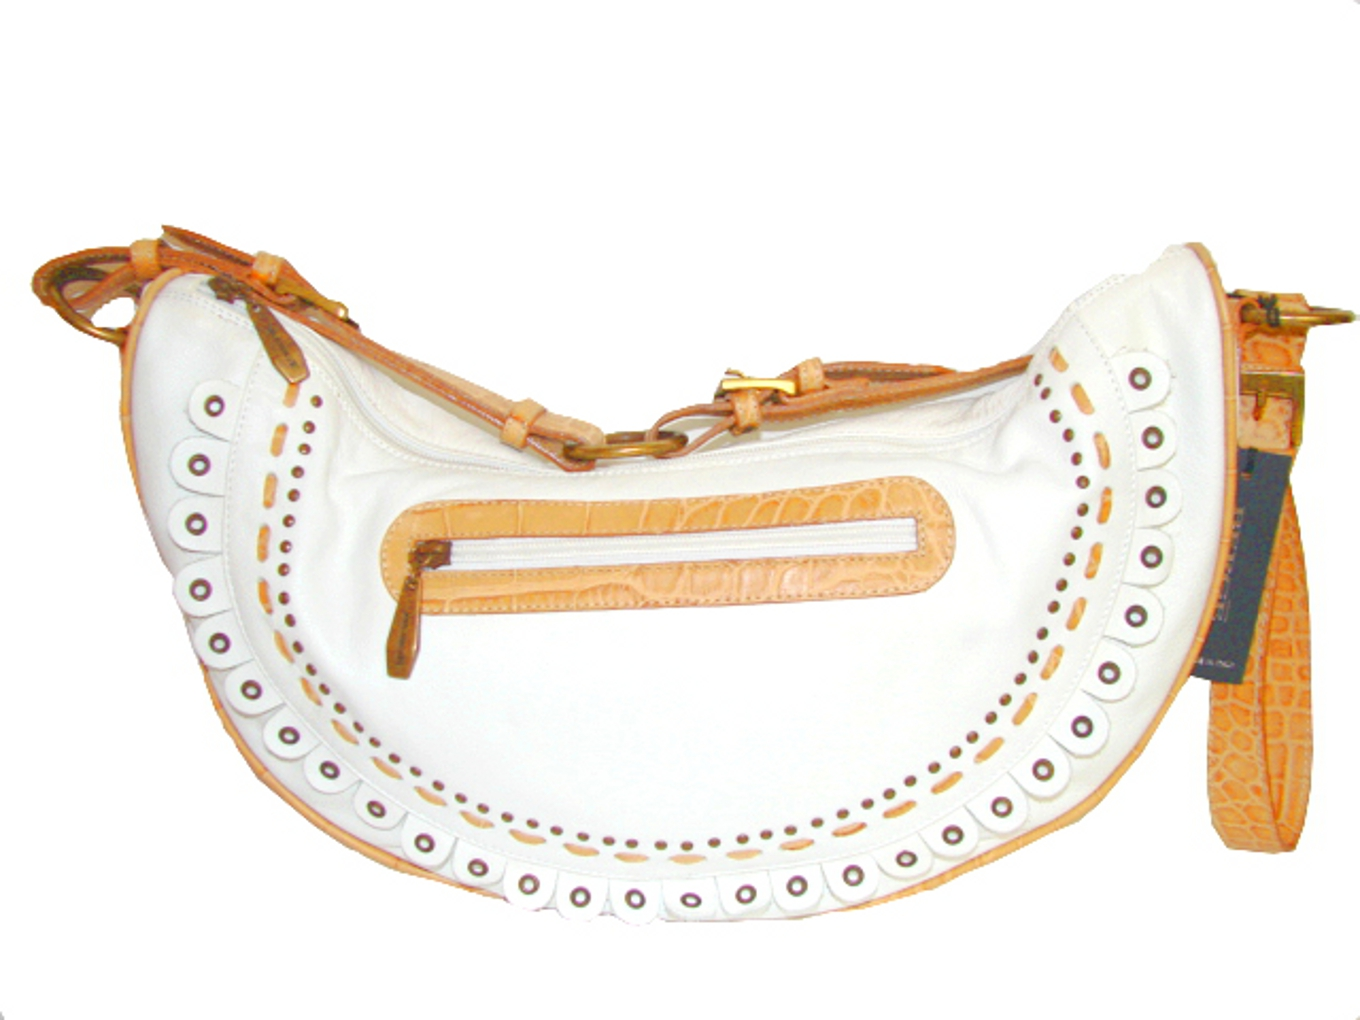 Berge-Italian Designer Handbag in White and Tan Color Leather!